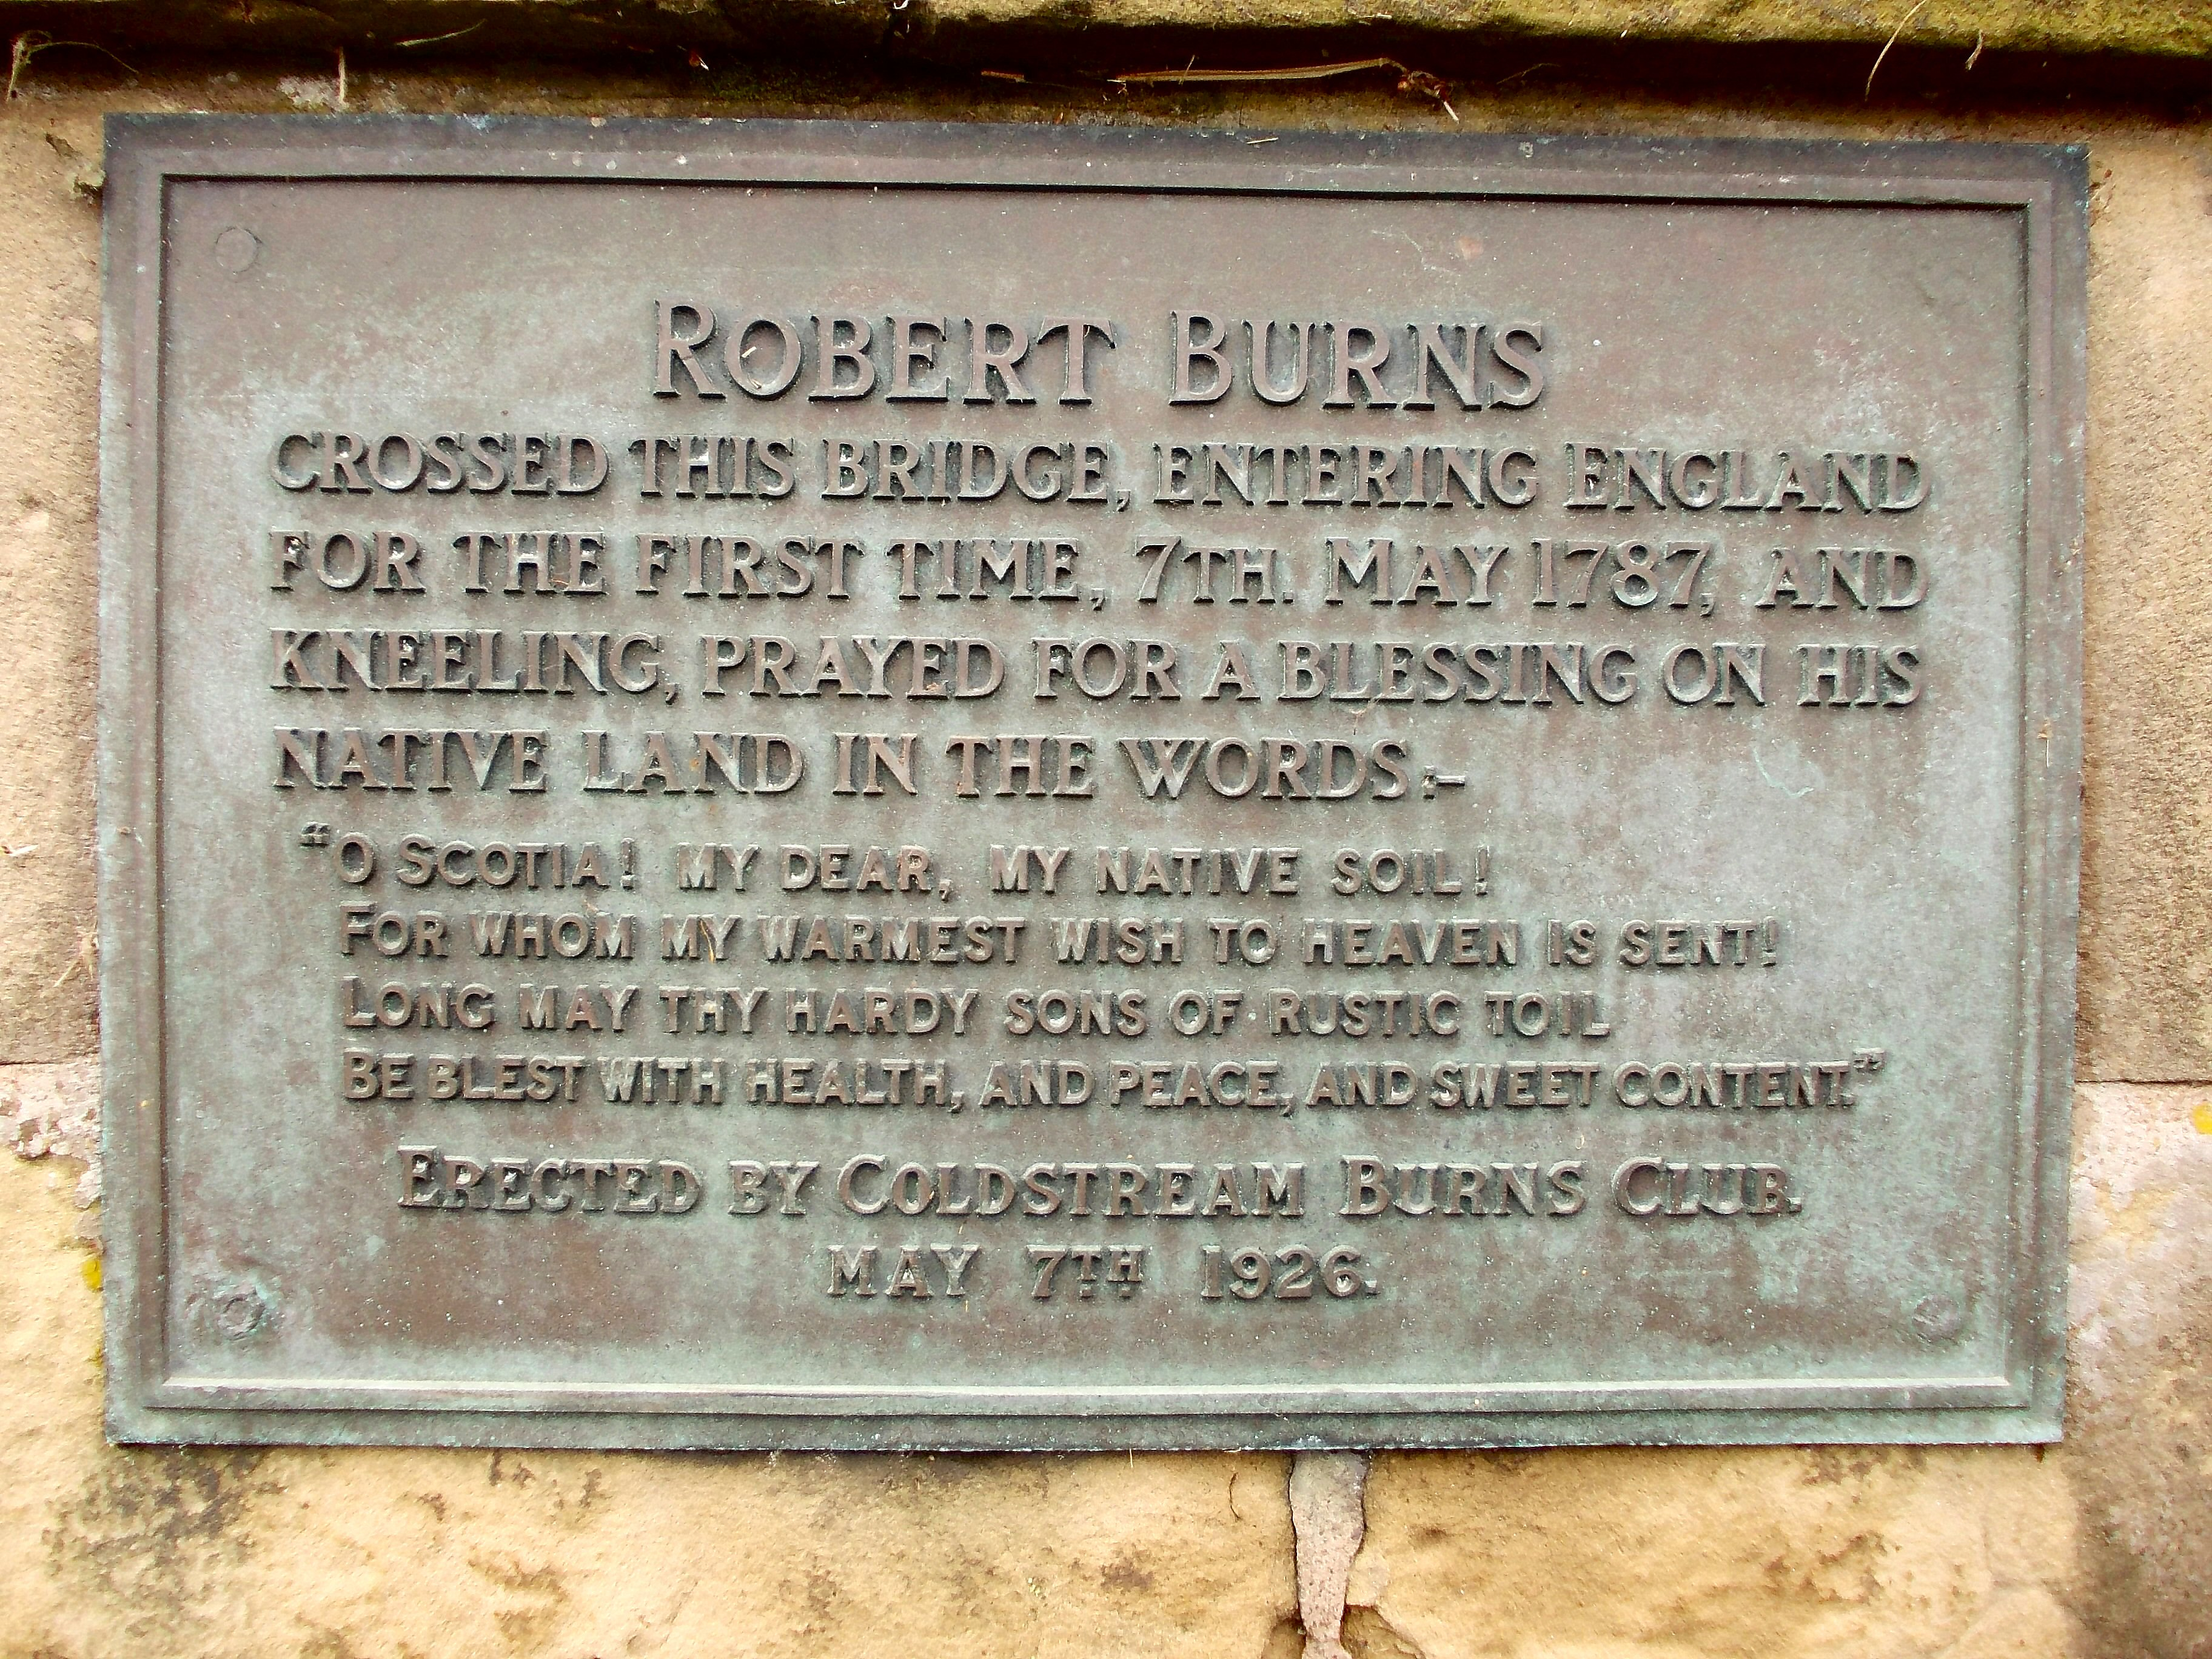 http://upload.wikimedia.org/wikipedia/commons/e/ea/Robert_Burns_plaque_on_Coldstream_Bridge.jpg